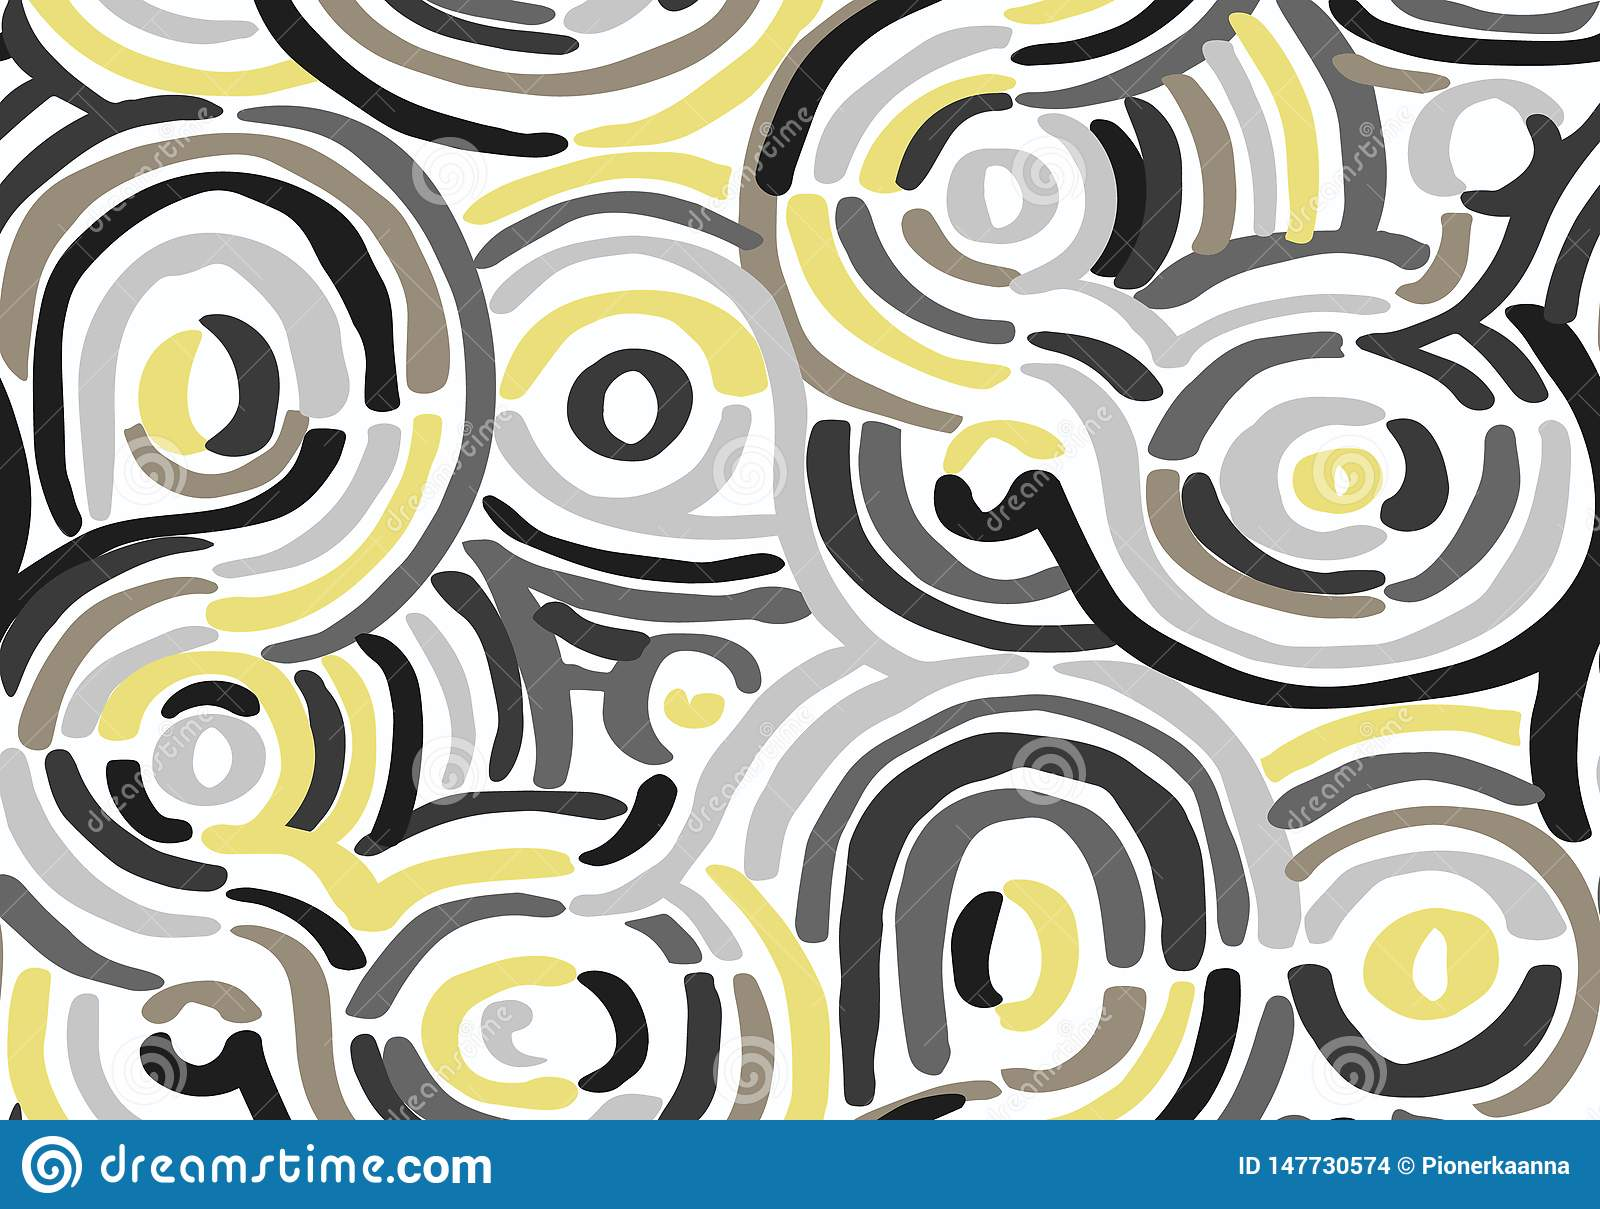 Abstract geometric pattern with wavy lines. Doodle backgrounded. Seamless vector background.